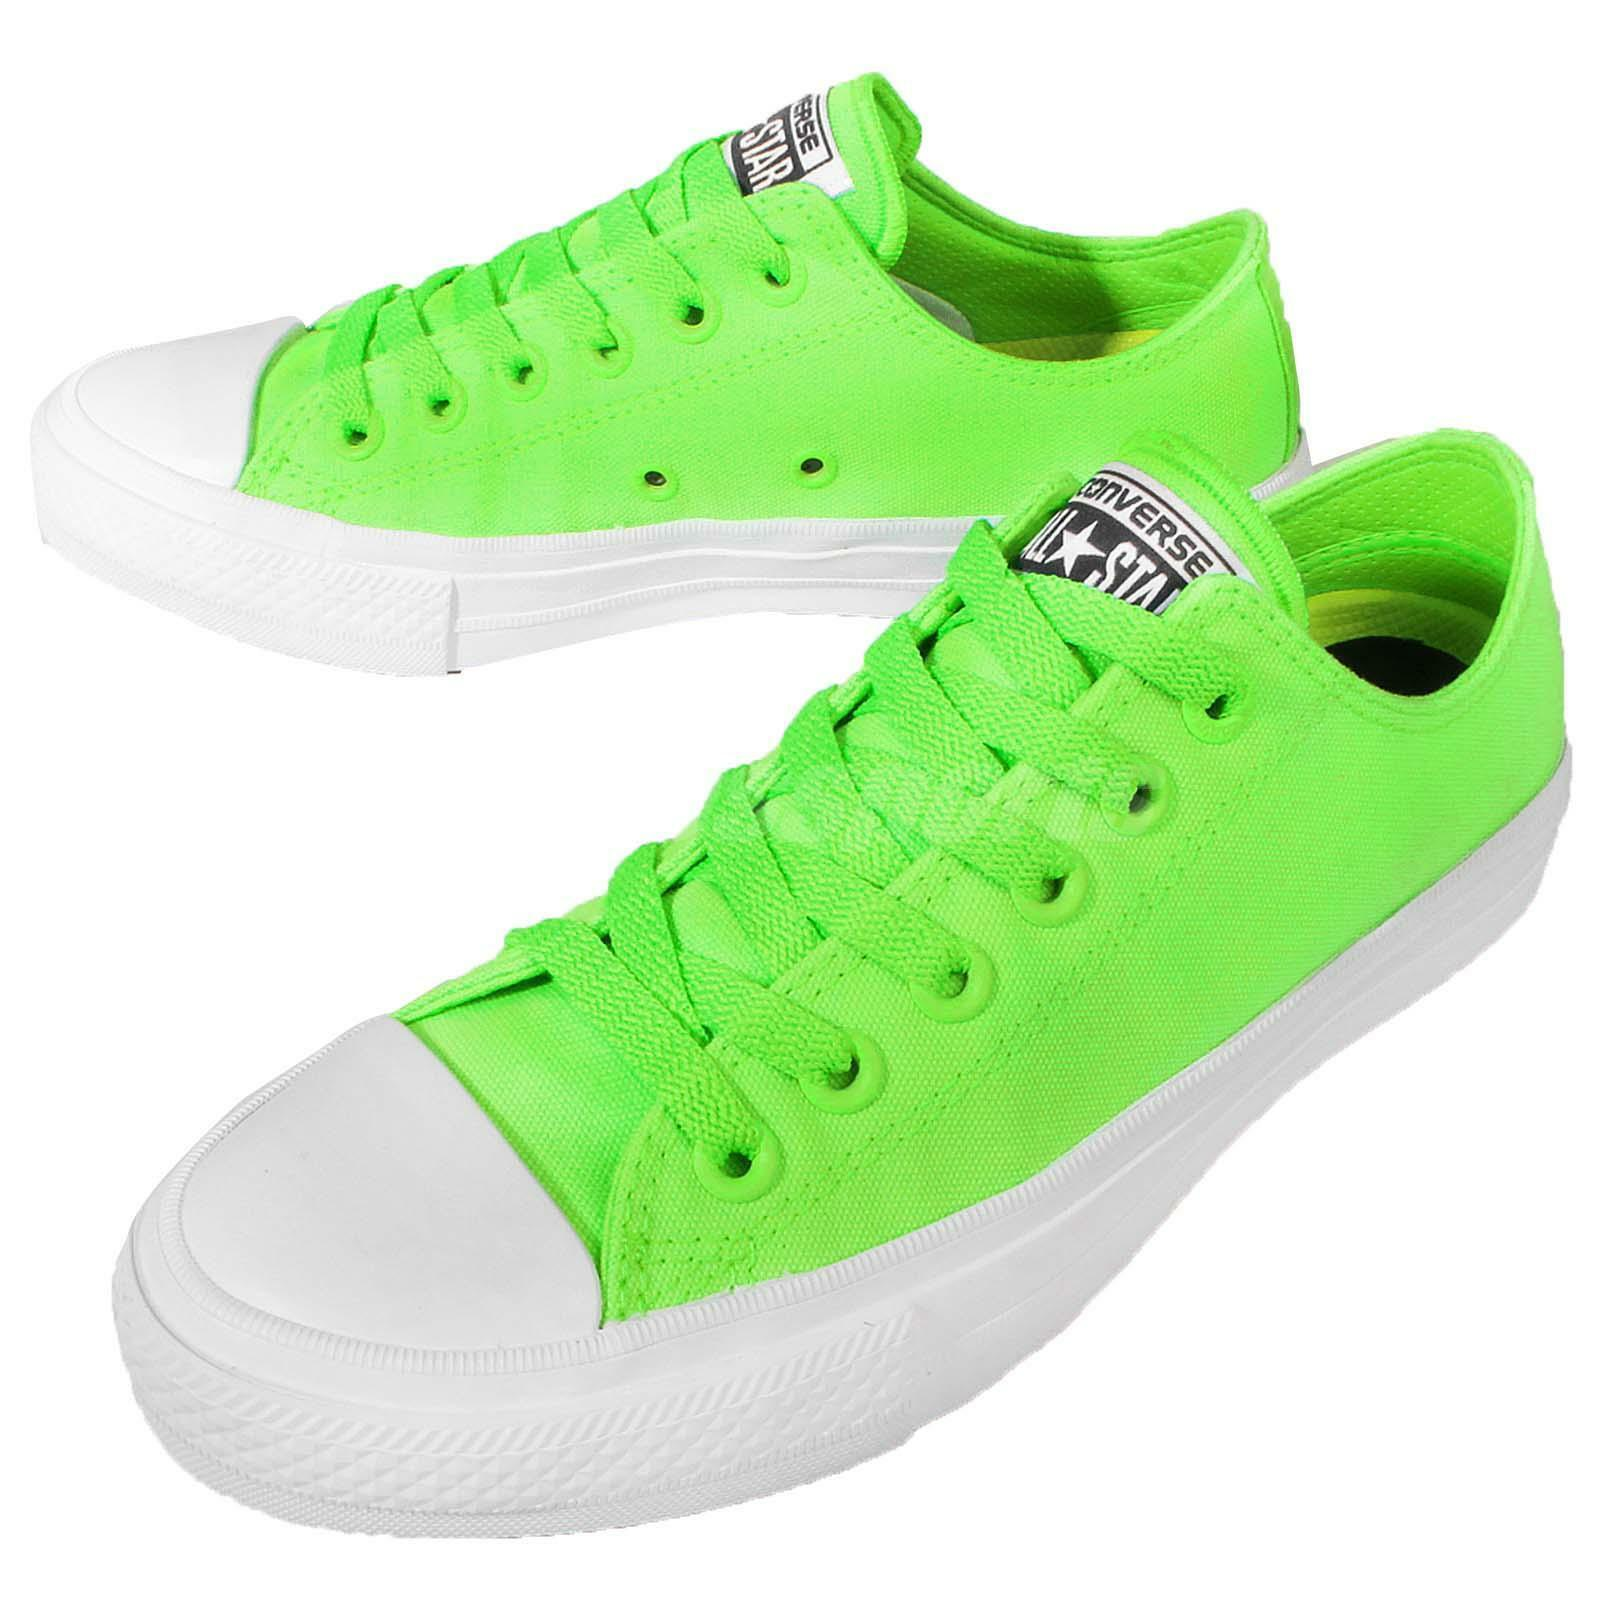 1a88f68be068 Converse Chuck Taylor All Star II OX Neon Green Green Green White Men  Casual Shoes 151122C